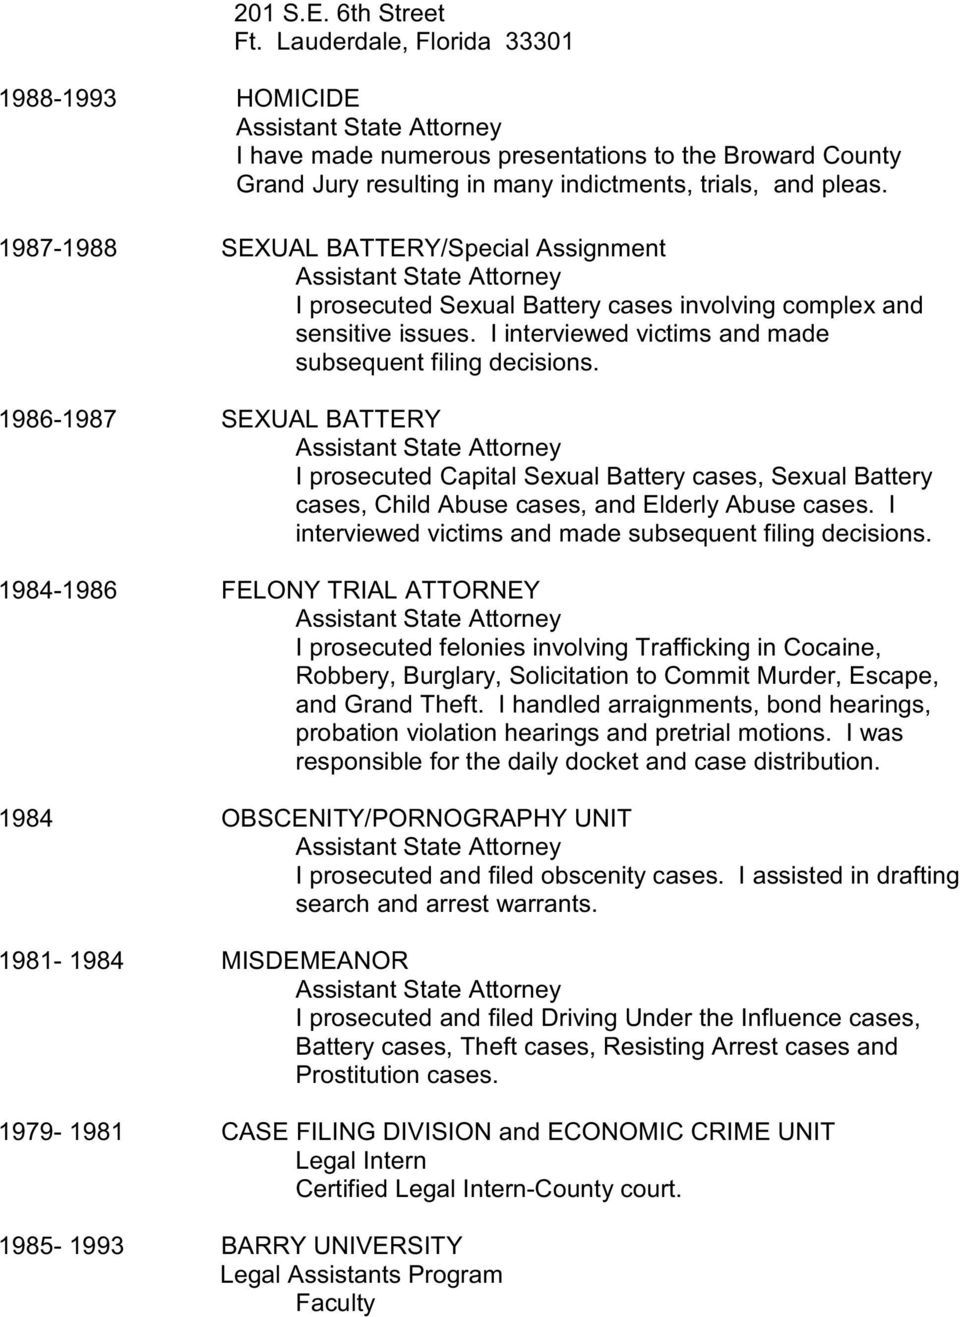 1986-1987 SEXUAL BATTERY I prosecuted Capital Sexual Battery cases, Sexual Battery cases, Child Abuse cases, and Elderly Abuse cases. I interviewed victims and made subsequent filing decisions.